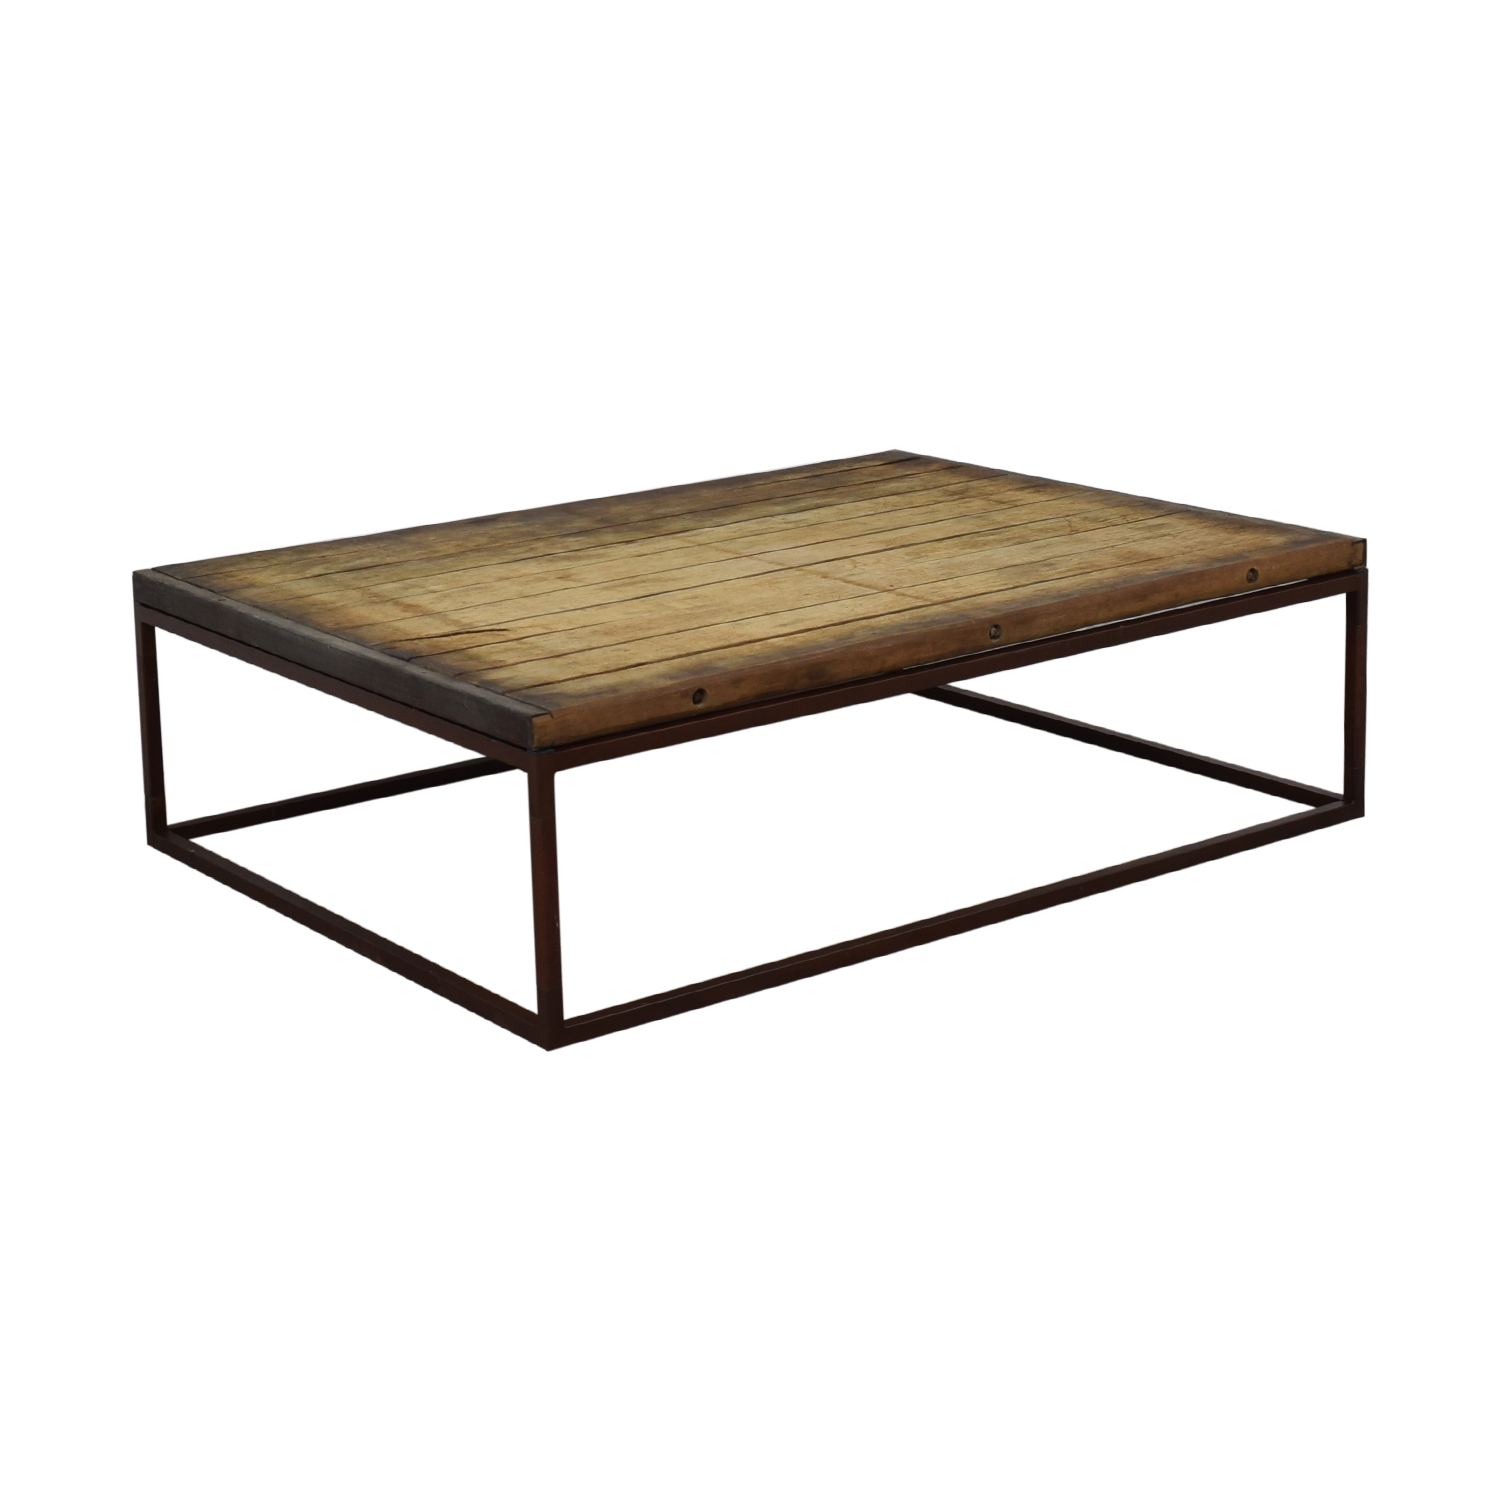 Restoration Hardware Bricklayer's Coffee Table Restoration Hardware